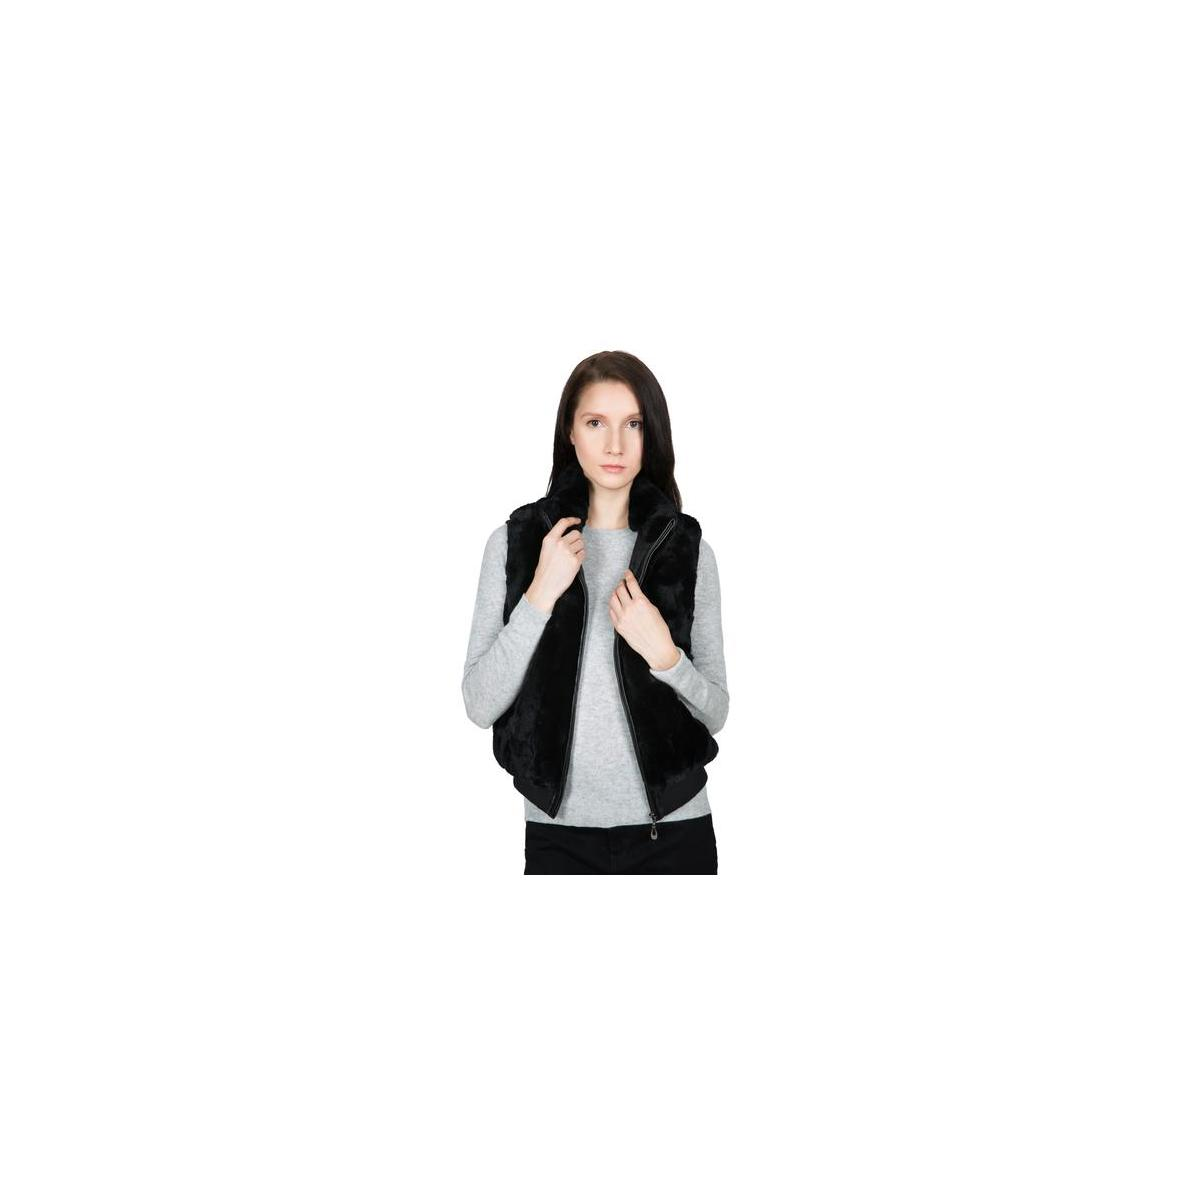 Women's 100% Real Rex Rabbit Fur Vest - Warm Sleeveless Fur Jacket with Zipper and Genuine Leather Accent